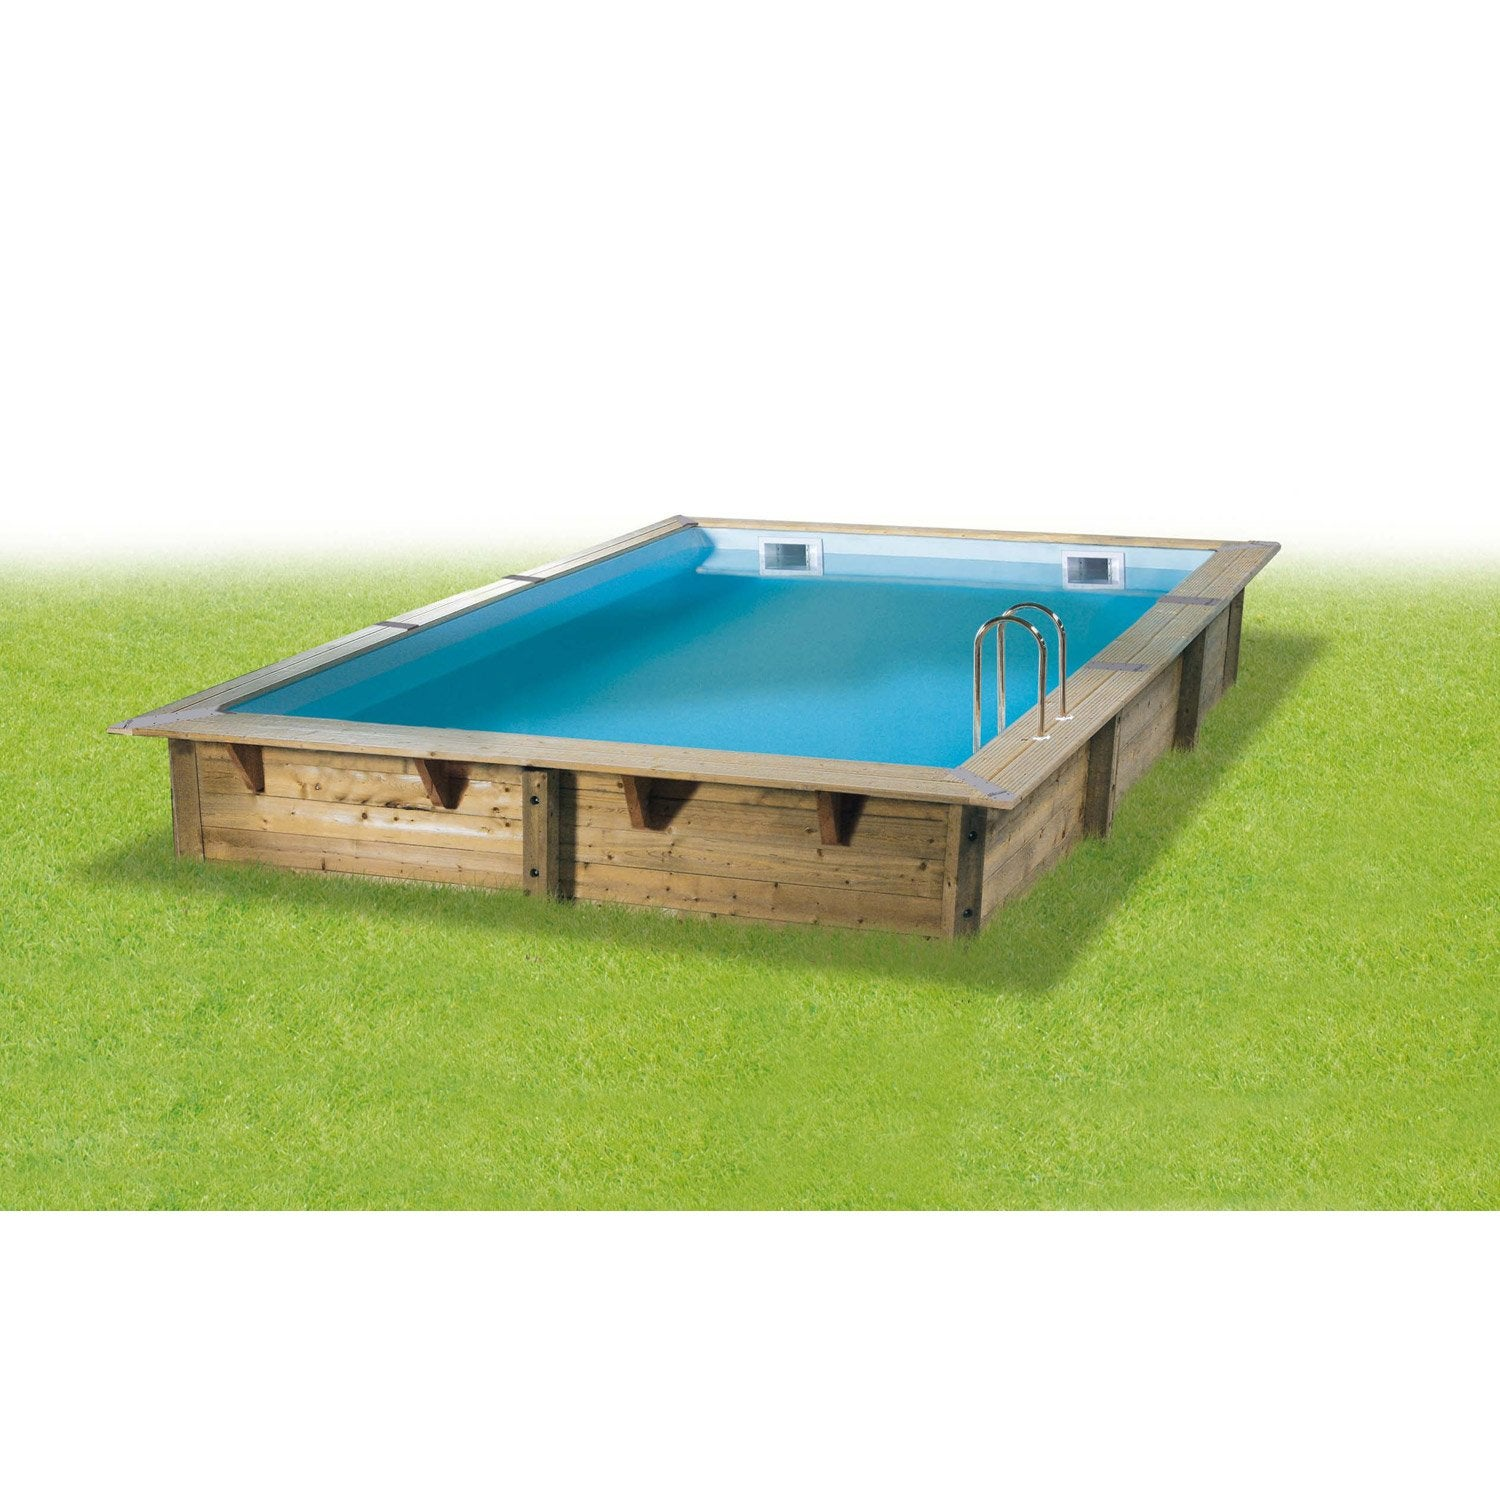 Destockage piscine bois - Piscine bois discount destockage ...